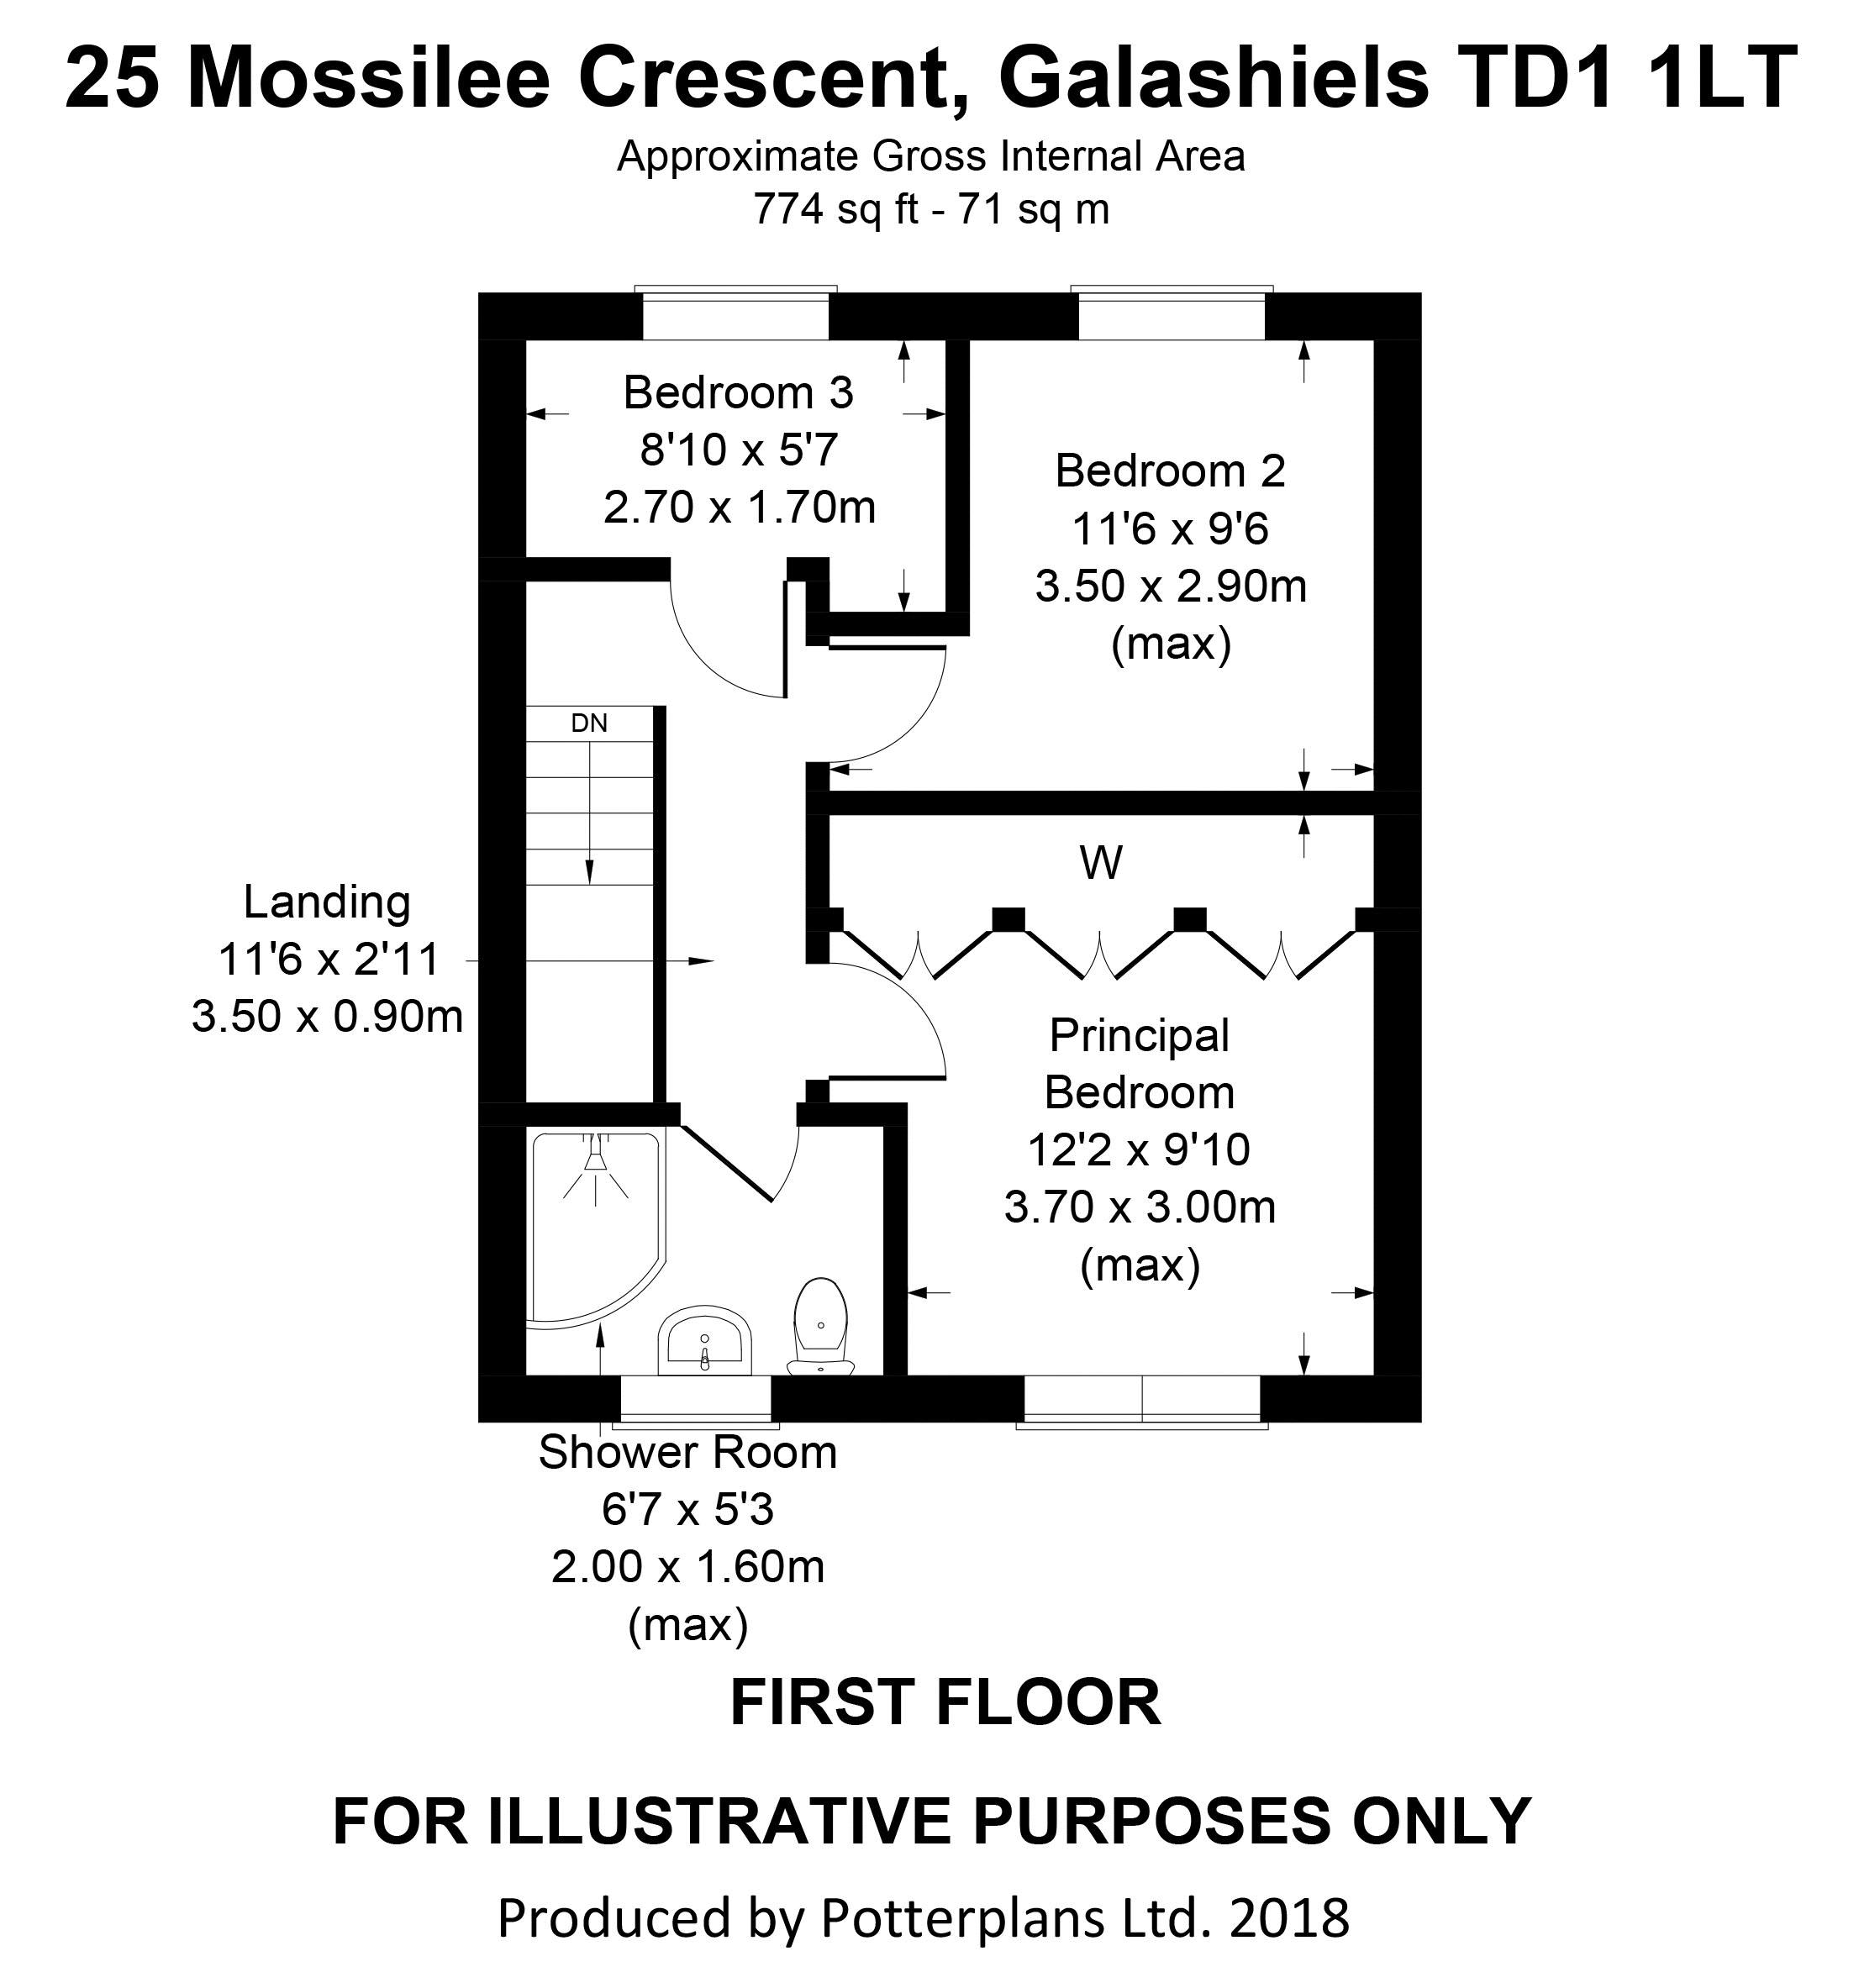 25 Mossilee Crescent First Floor